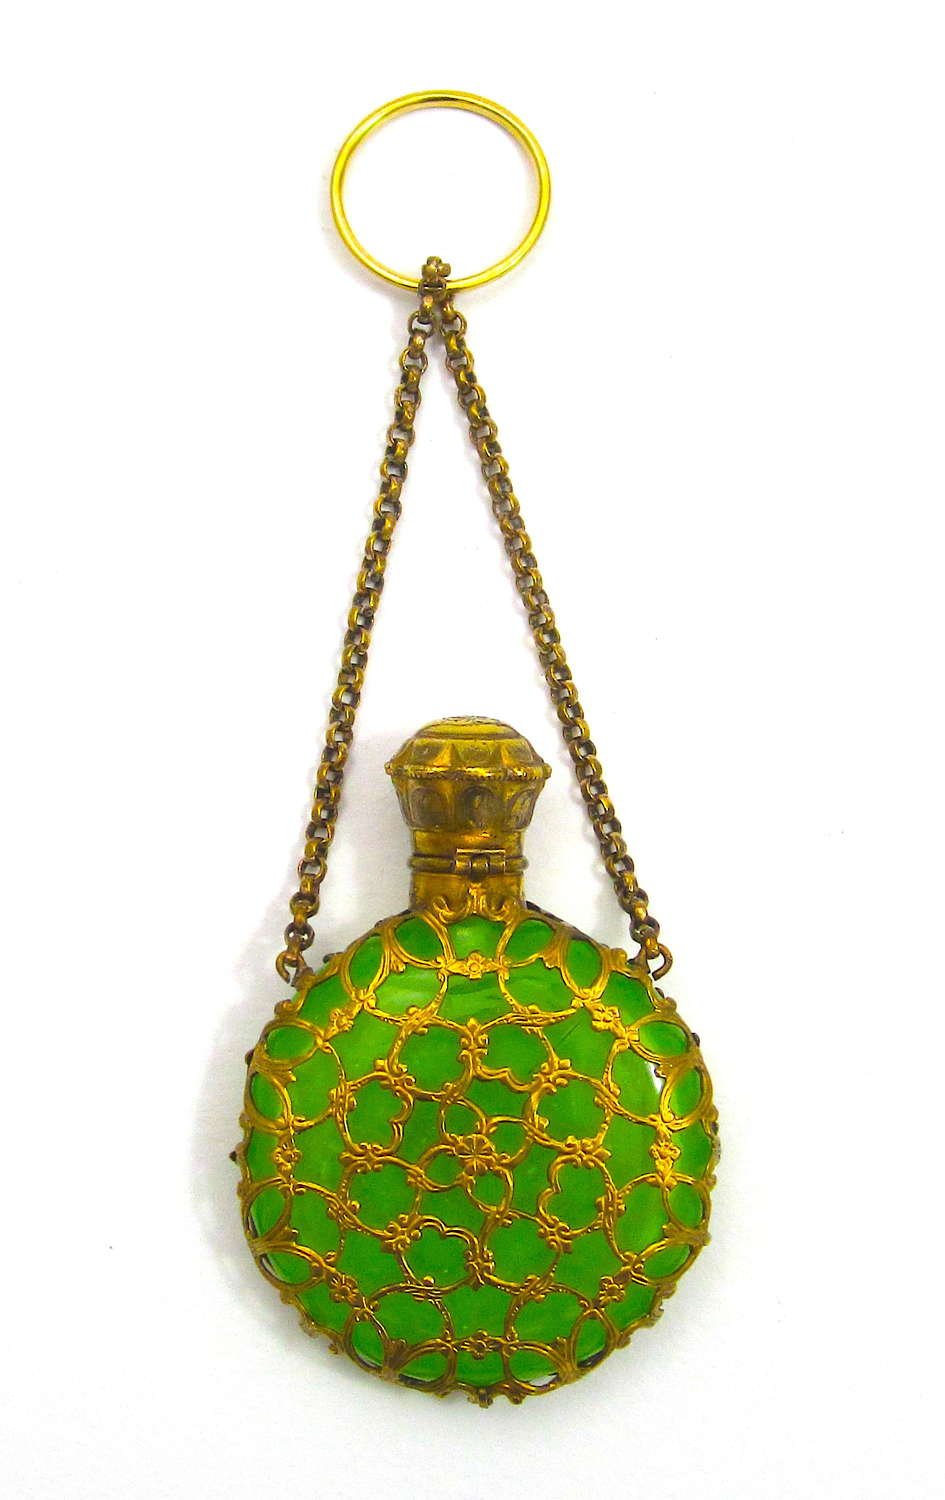 Antique Palais Royal Green OplaineGlass Scent Bottle with Chatelaine